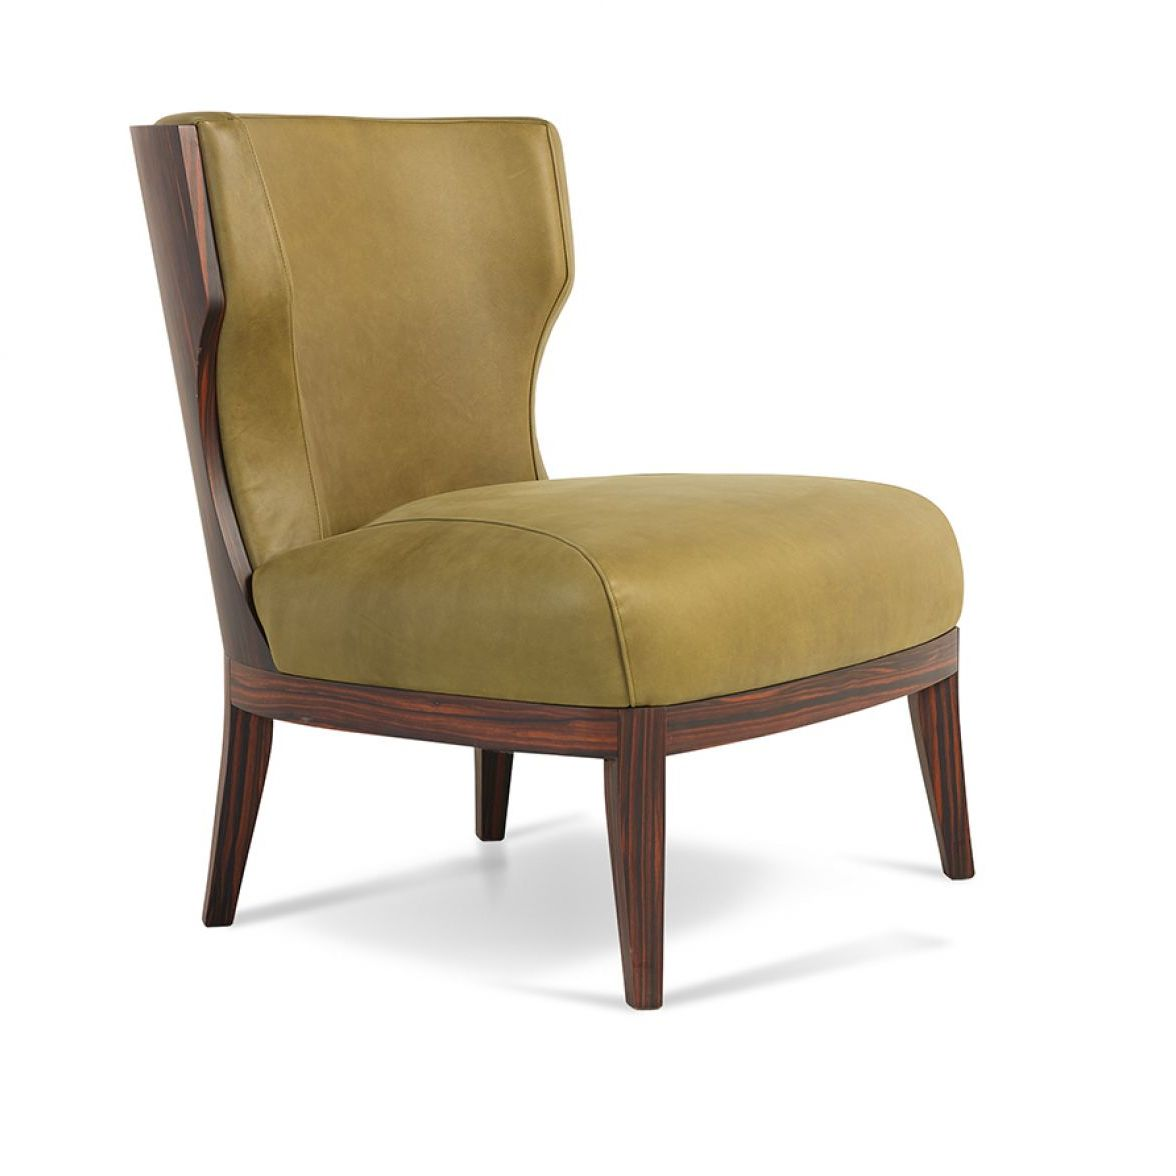 Grace Wood armchair фото цена